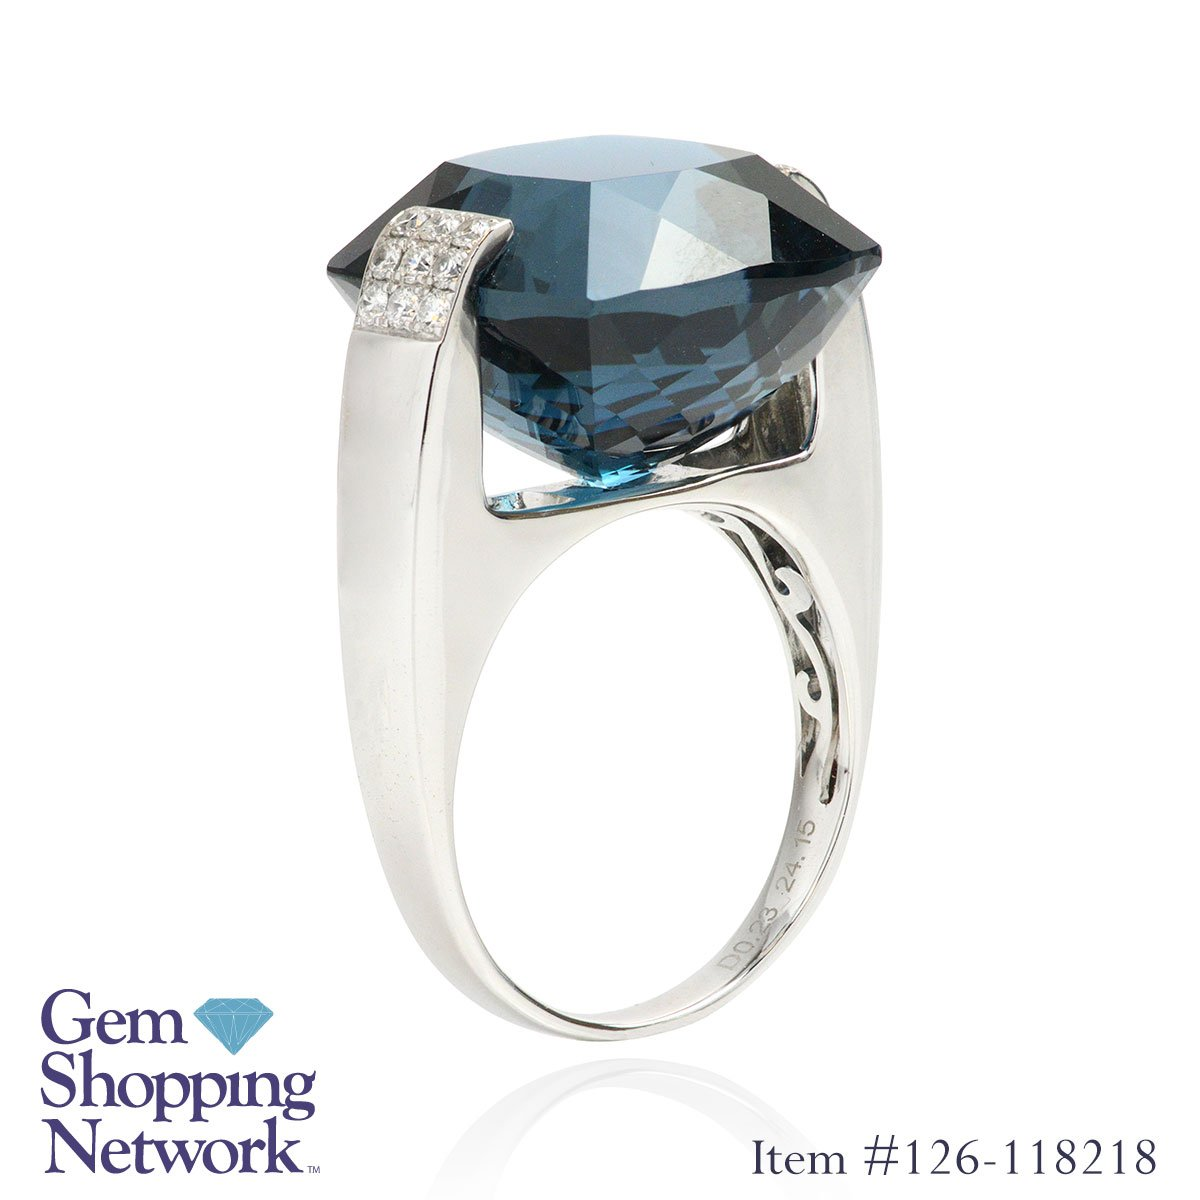 gemshoppinglive photo